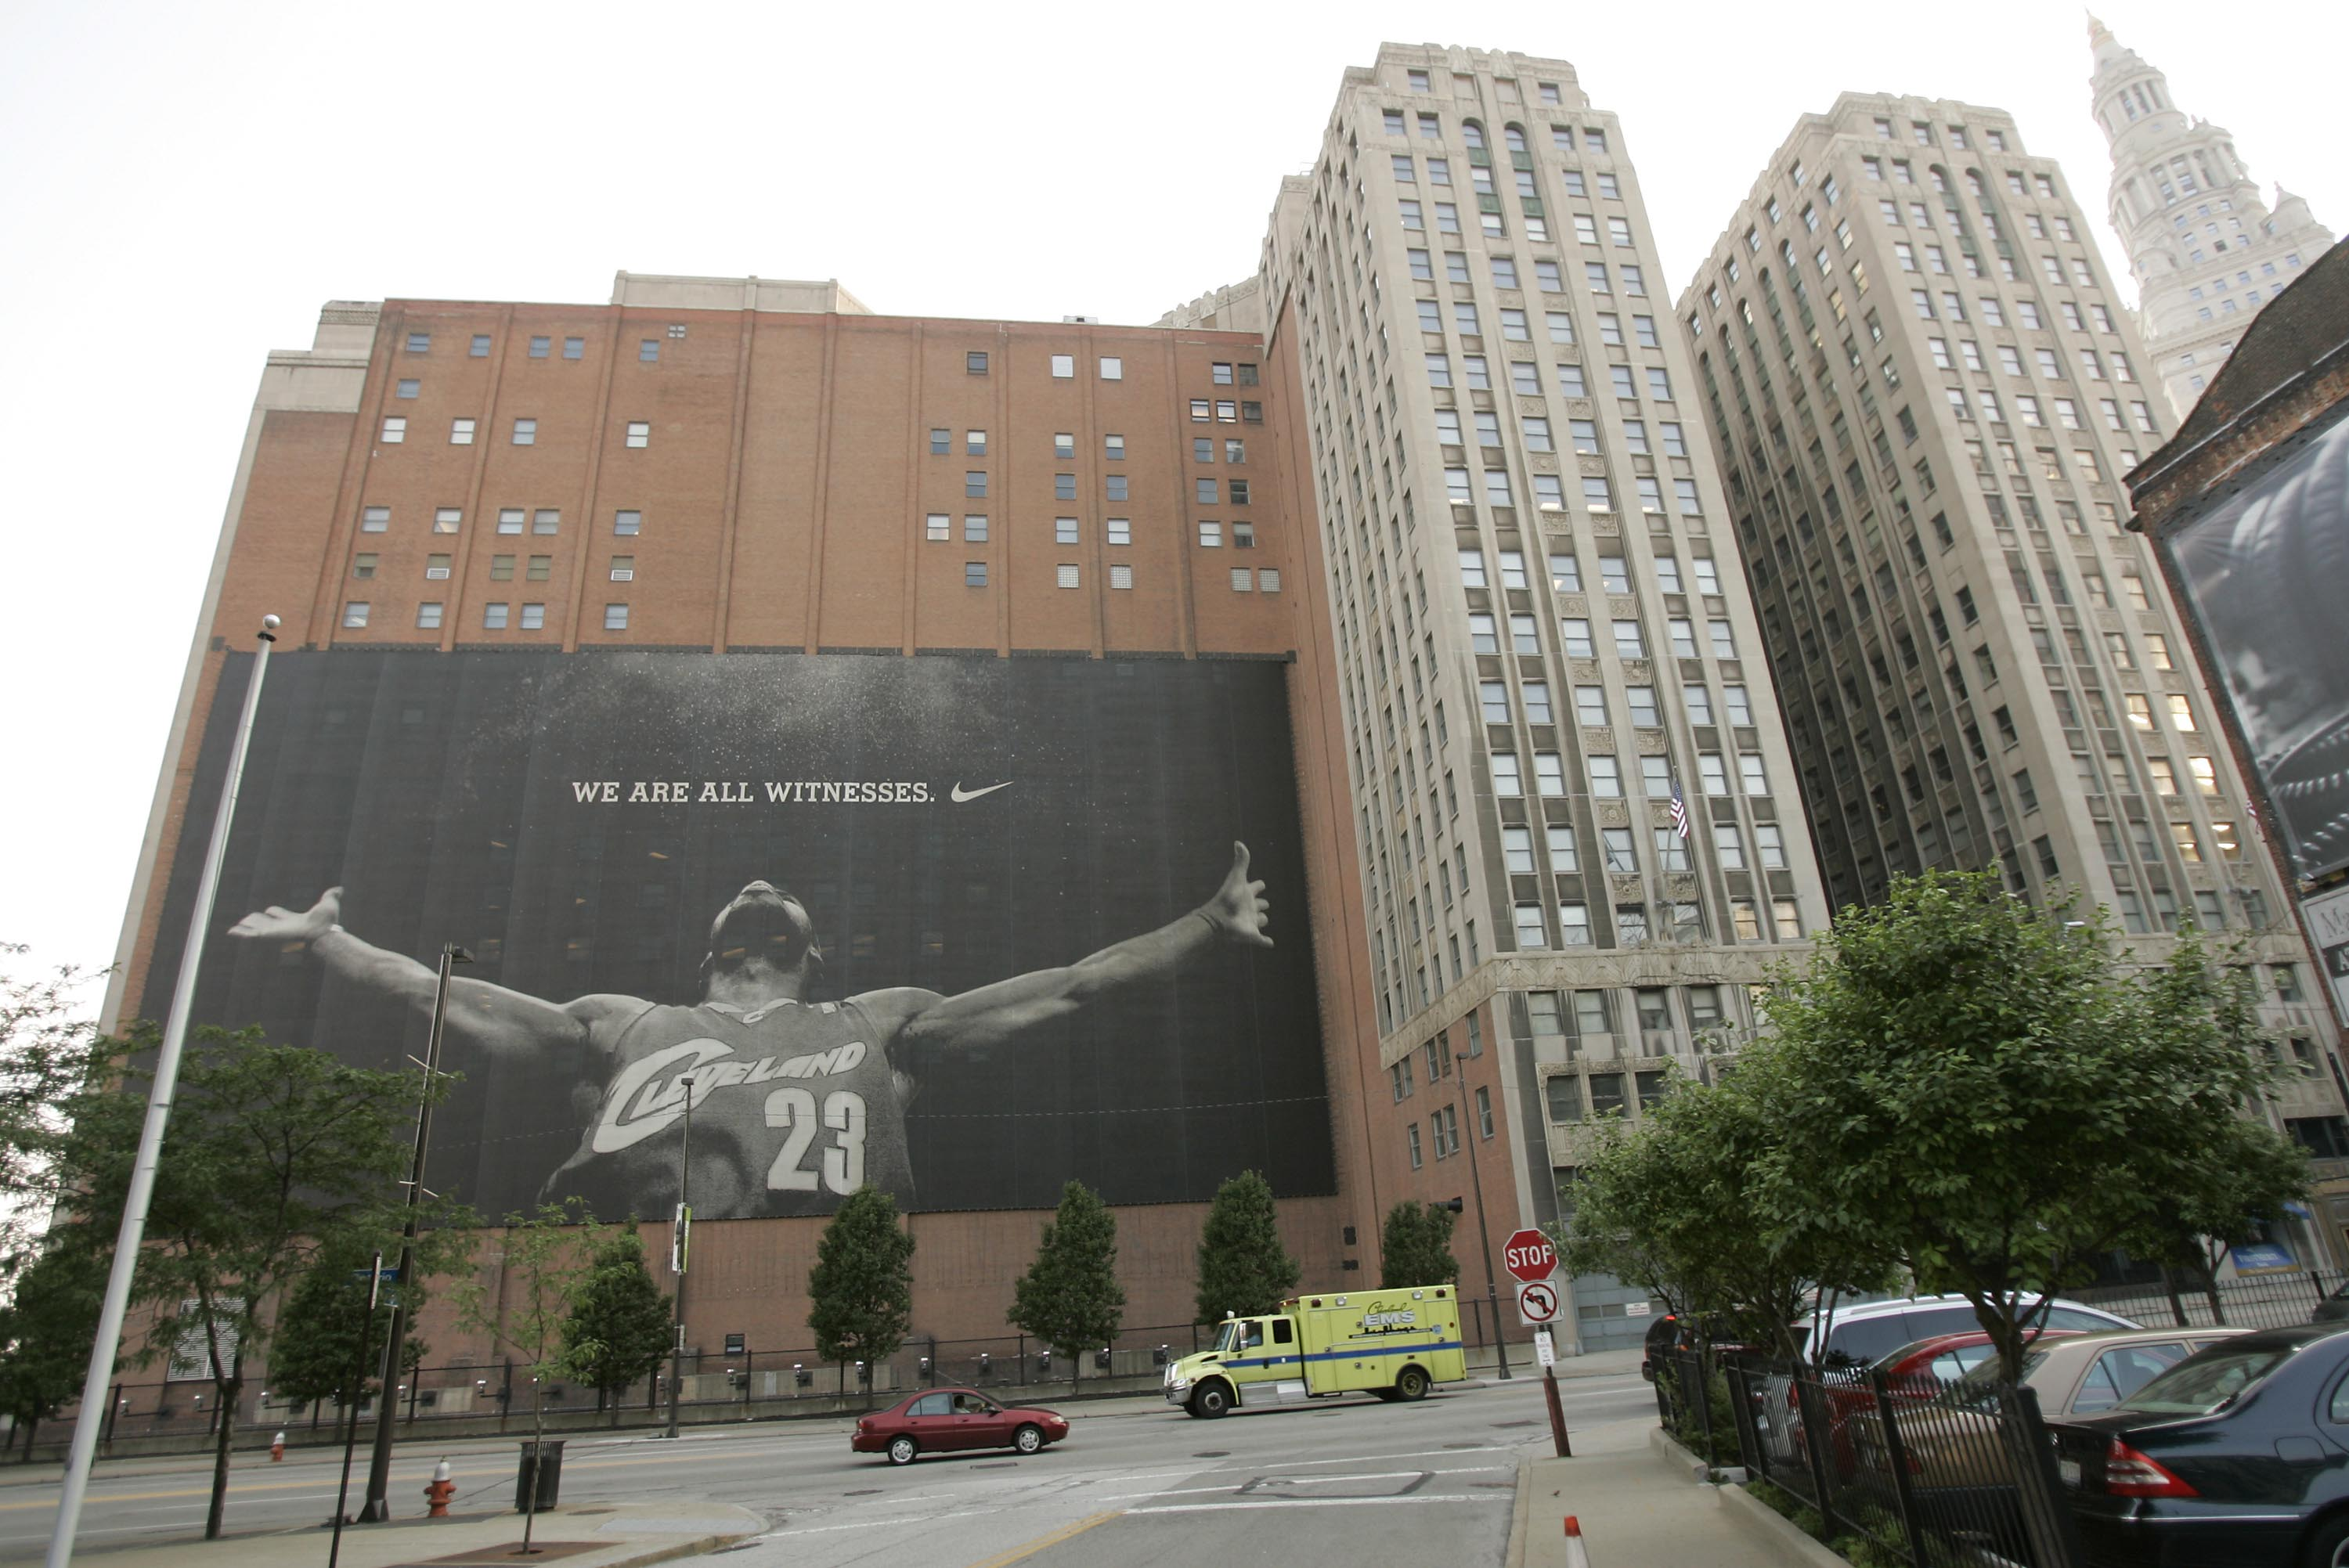 CLEVELAND - JULY 8:  A larger than life photograph of LeBron James is displayed July 8, 2010 in Cleveland, Ohio. The two-time Most Valuable Player has the choice of remaining with the Cleveland Cavaliers or signing with a new team. (Photo by J.D. Pooley/G